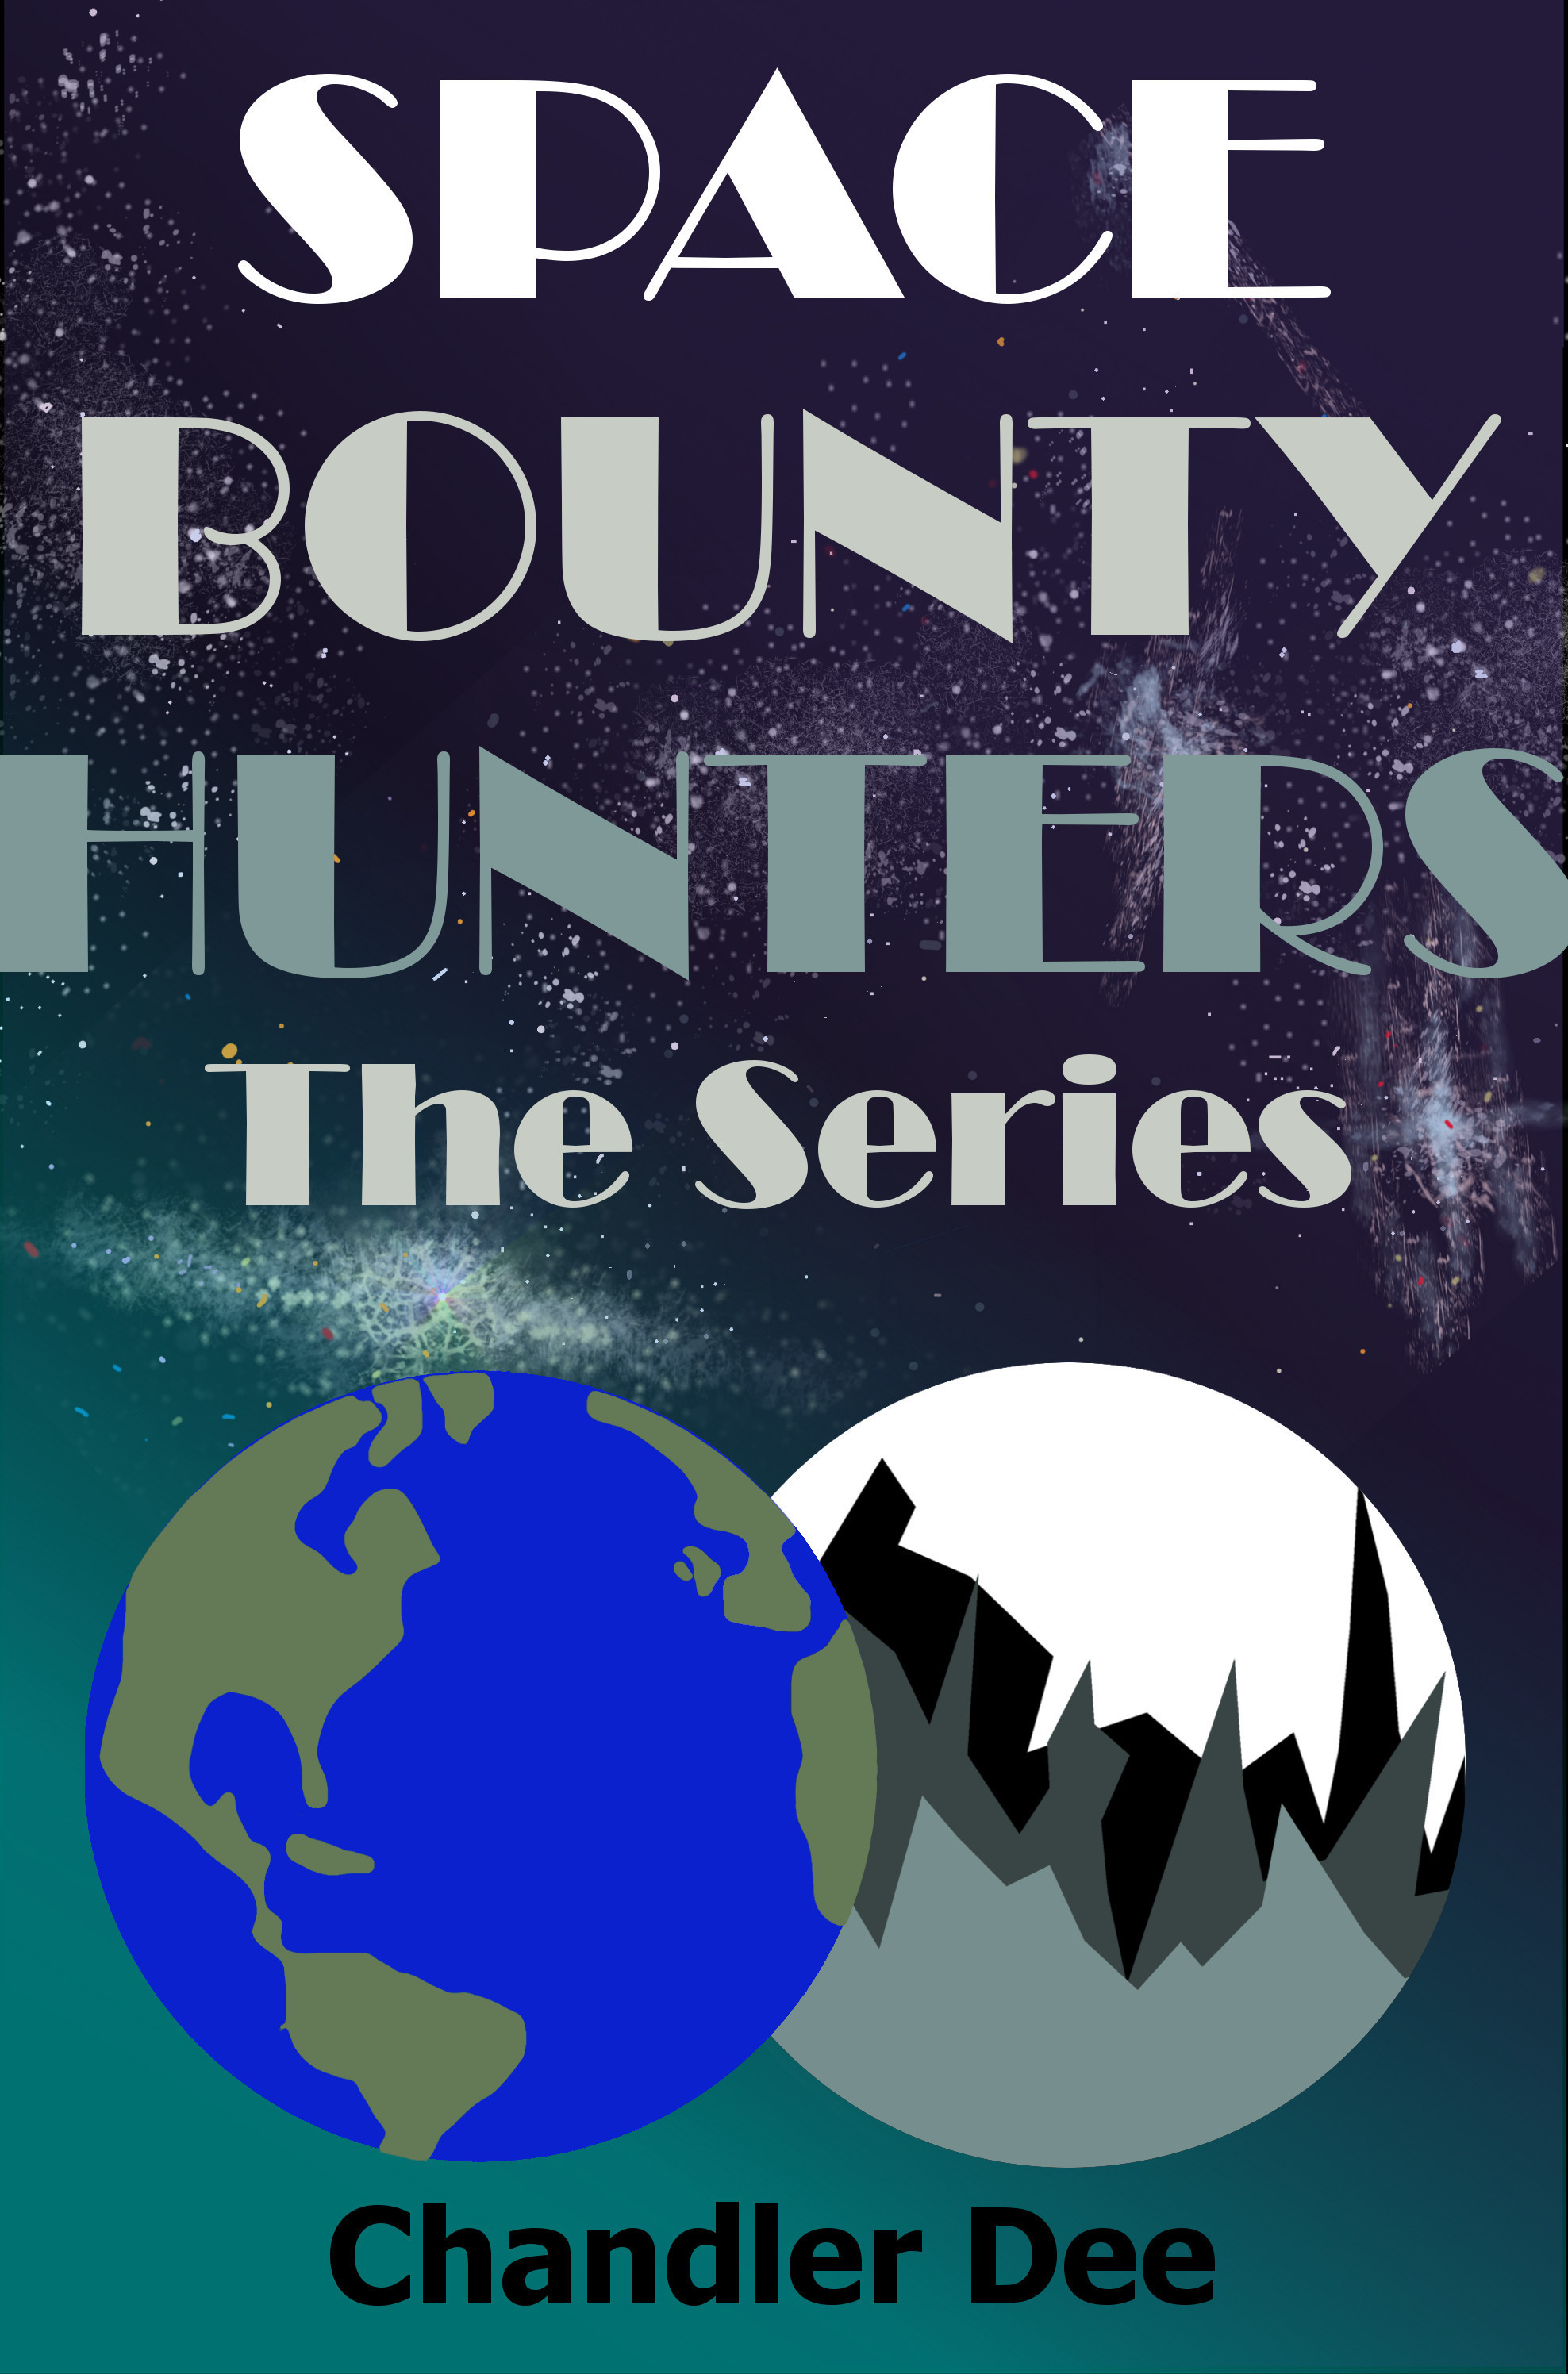 The Space Bounty Hunters Series: Complete Collection Chandler Dee